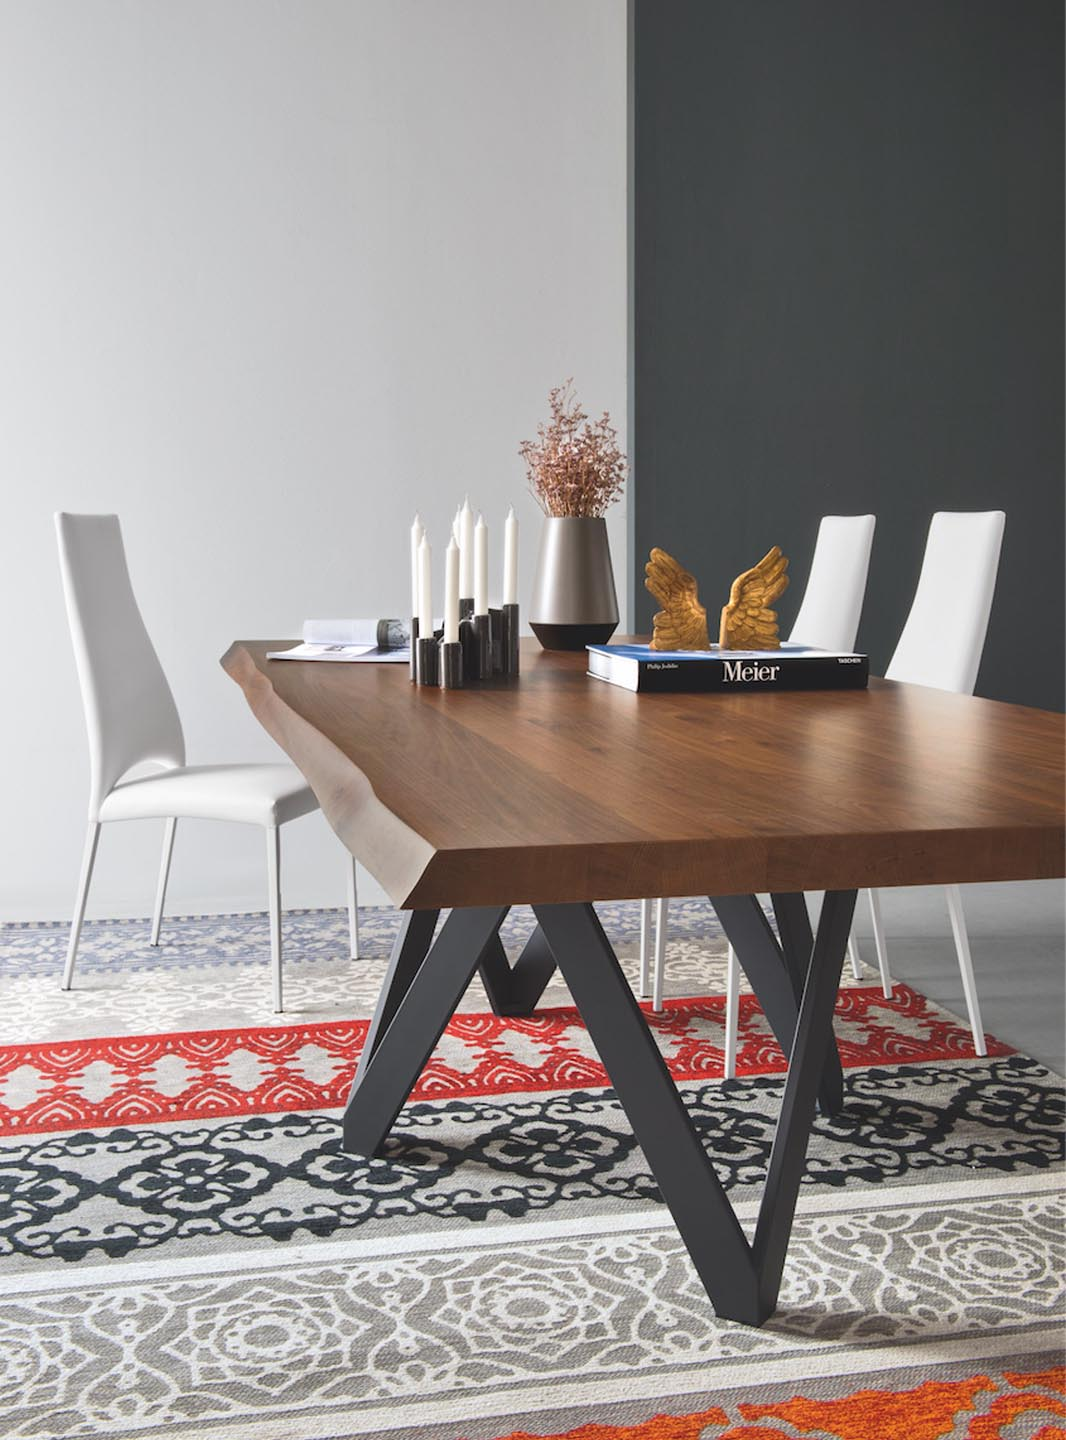 Cartesio table calligaris mariette clermont for Calligaris soldes